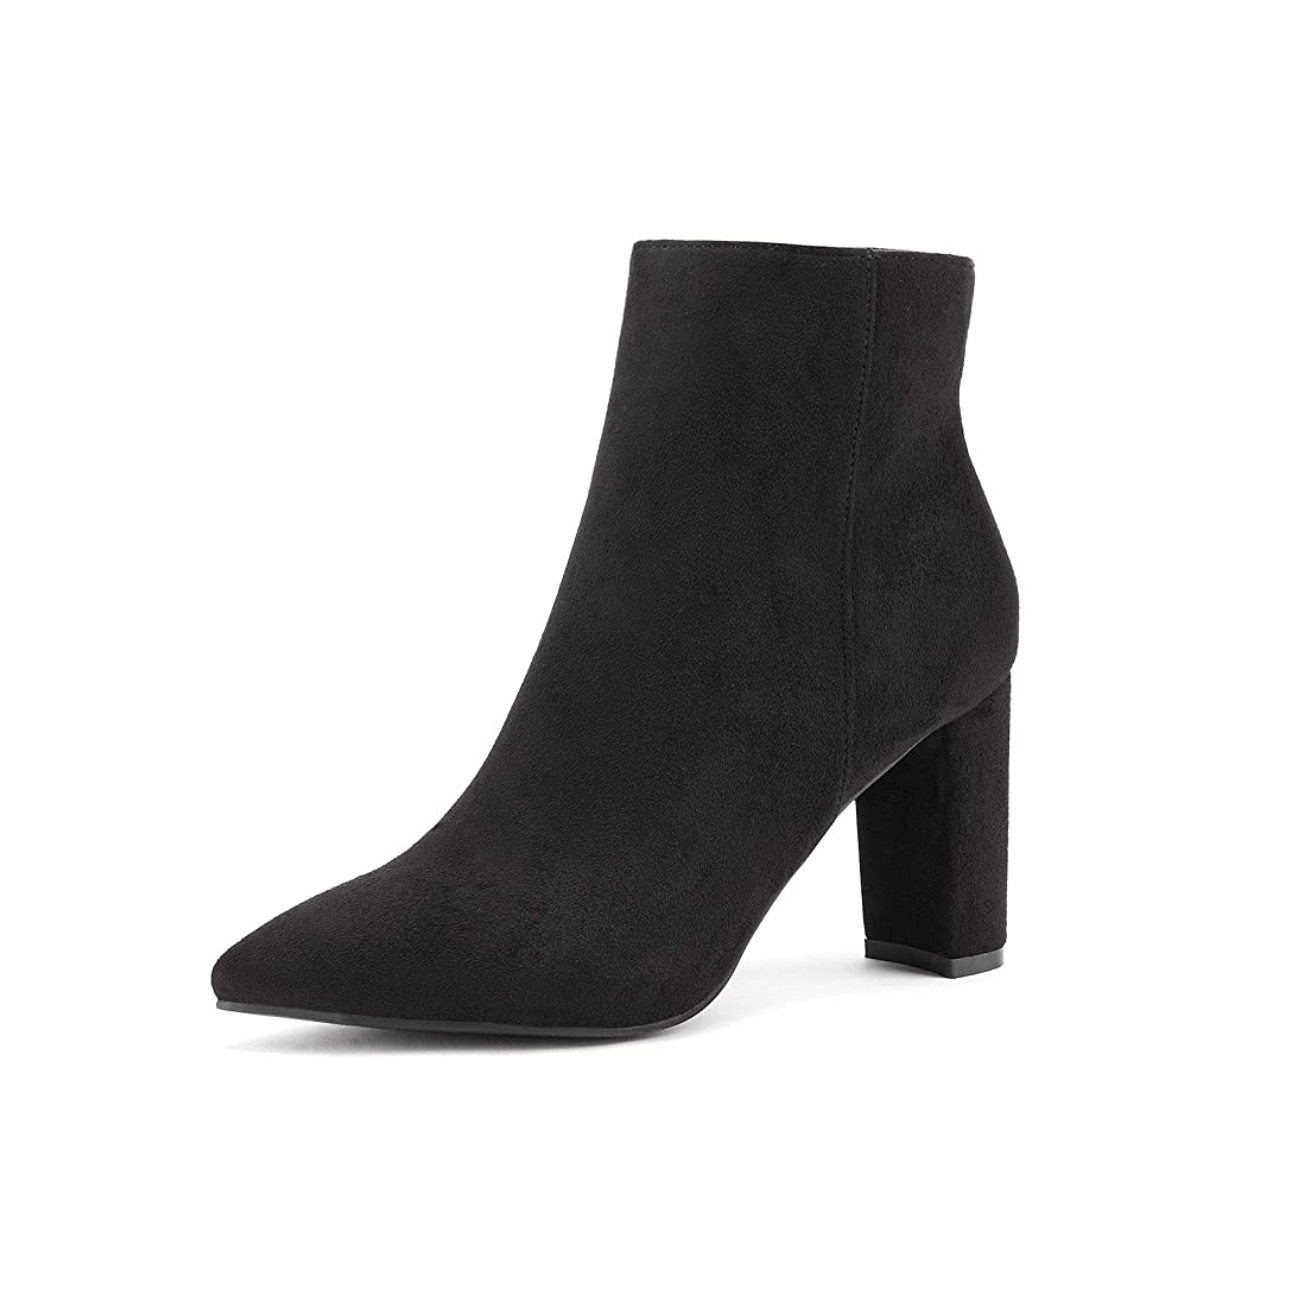 The Classic Black Bootie